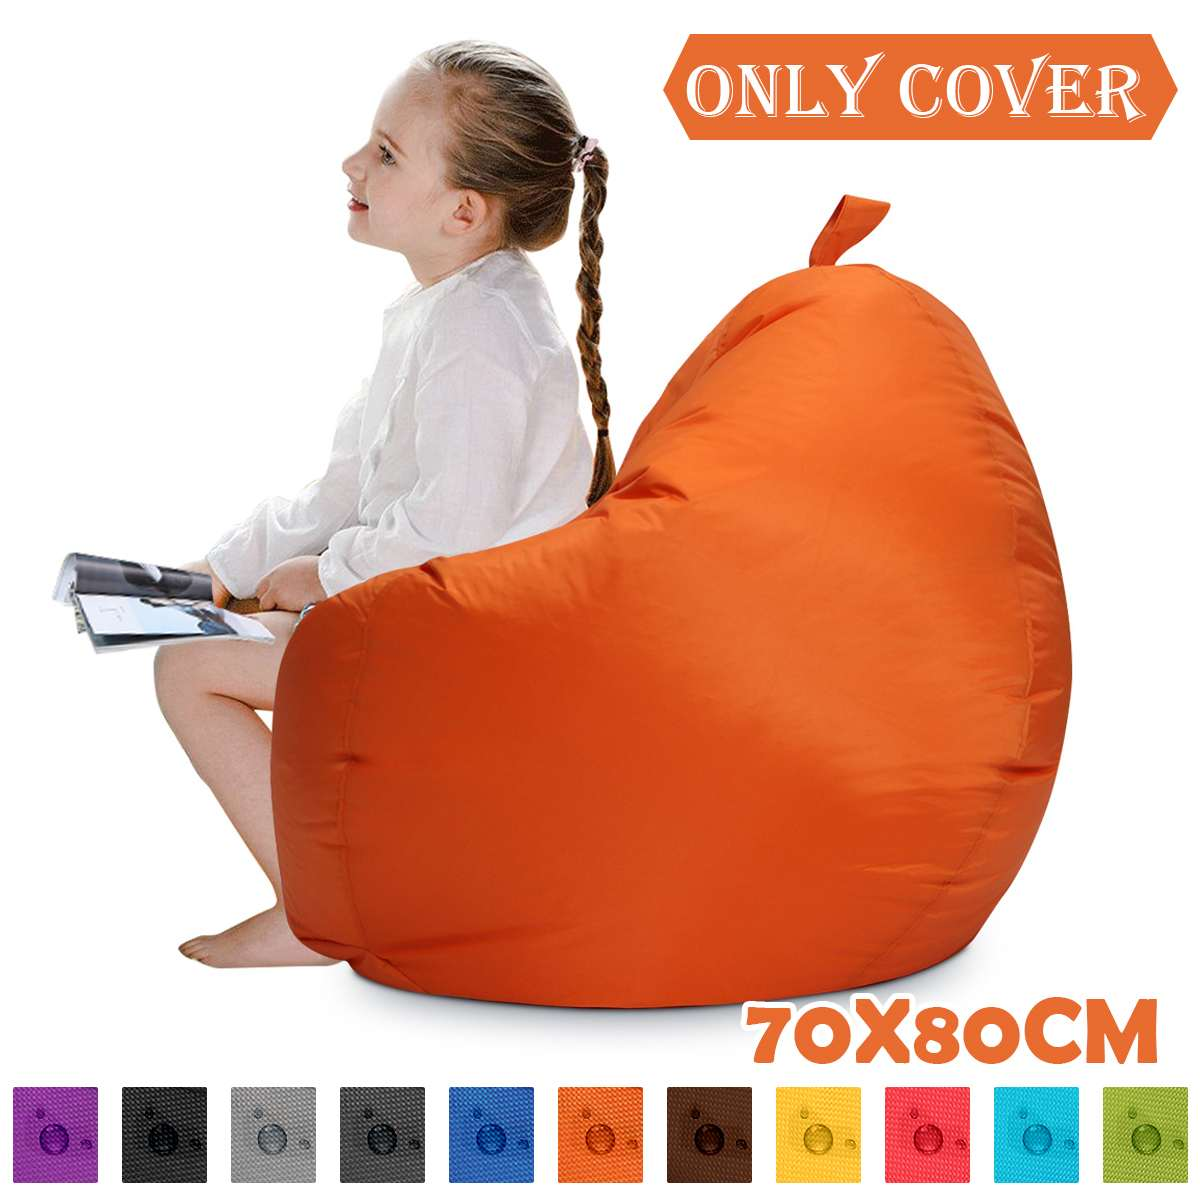 Chair Cover Lazy Beanbag Without Filling Home Gamer Office With Back Comfortable Kids Aults Sofa Covers